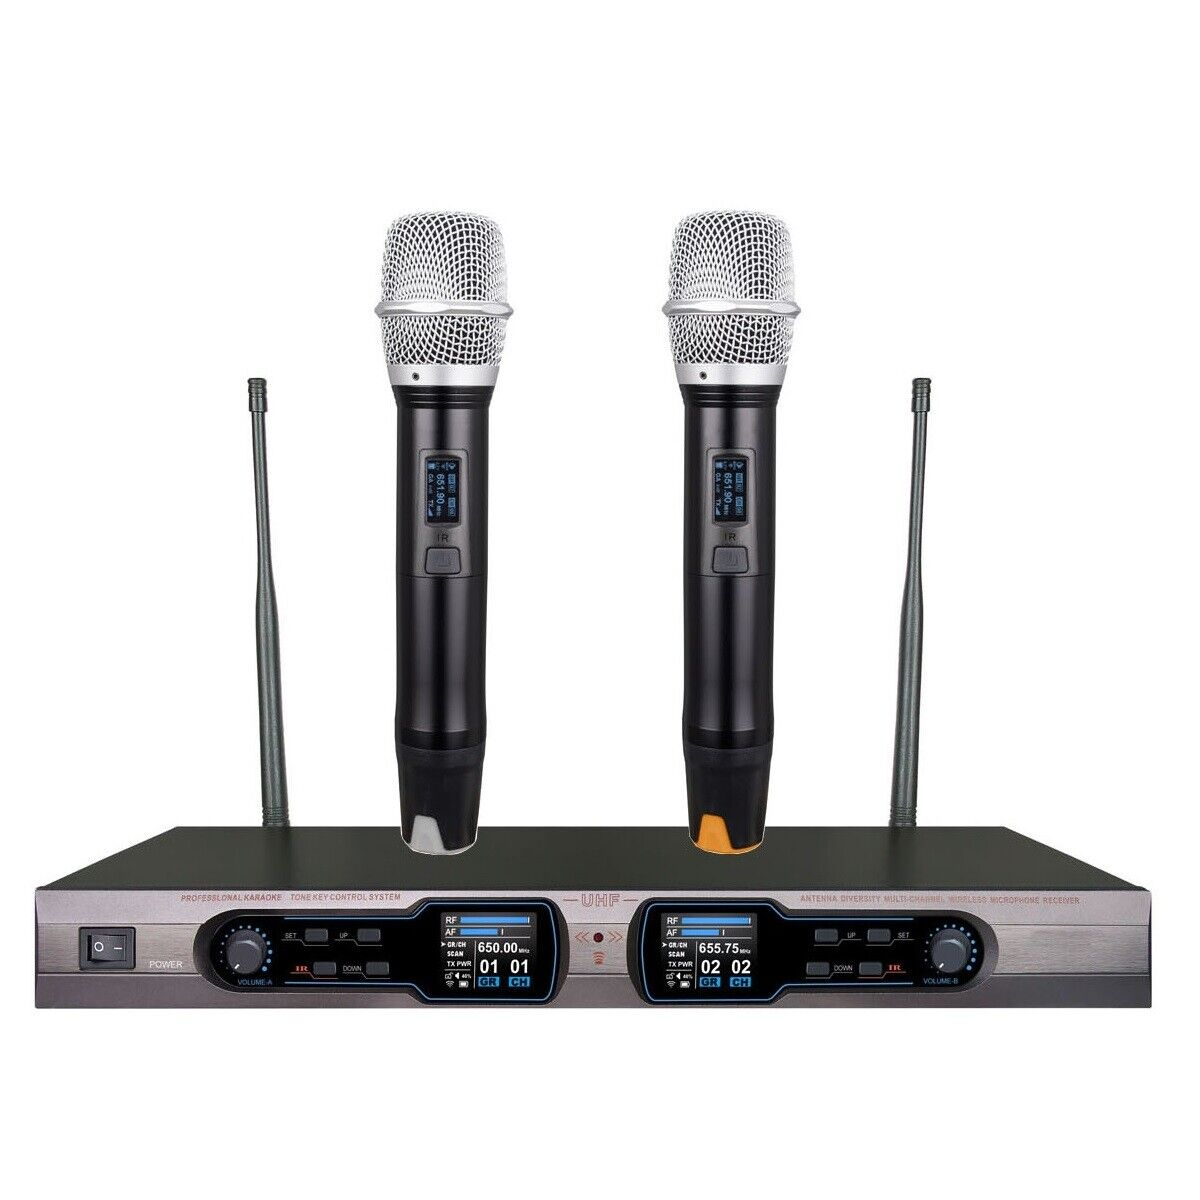 Wireless Vocal Handheld Microphone Diversity Dual Cordless Microphone For Shure